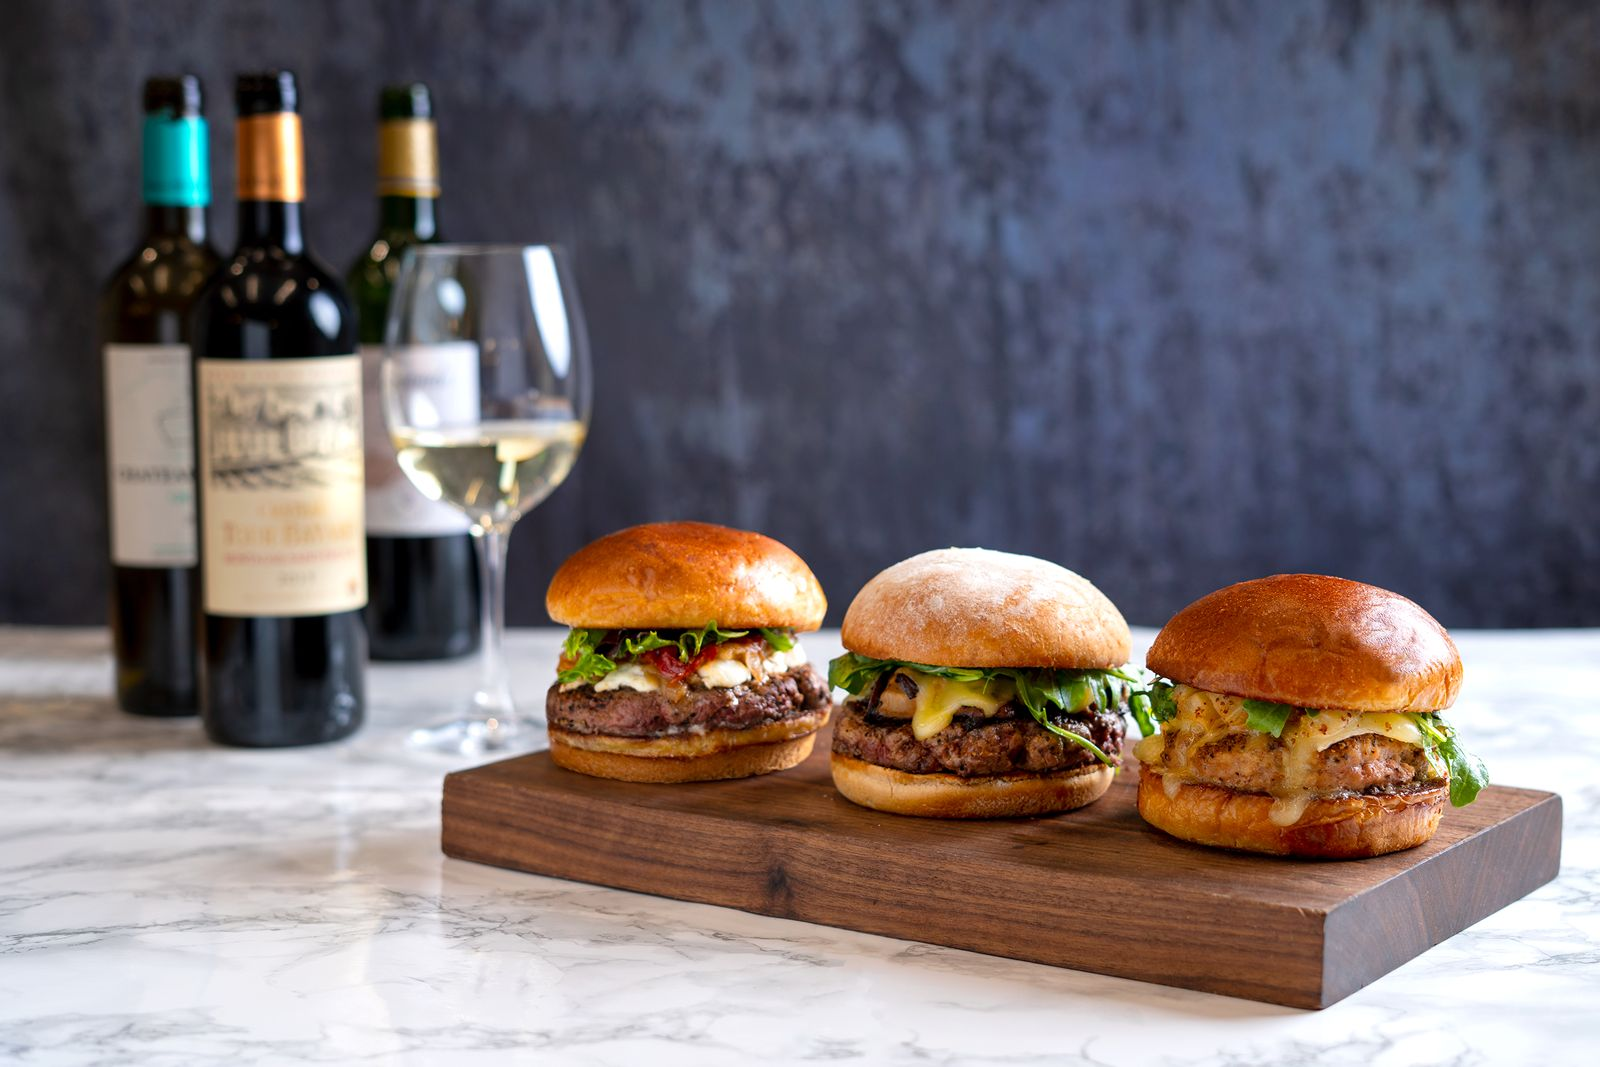 Experience Uniquely Crafted Burger & Bordeaux Wine Pairings as Part of Del Frisco's Grille Limited-Time Menu